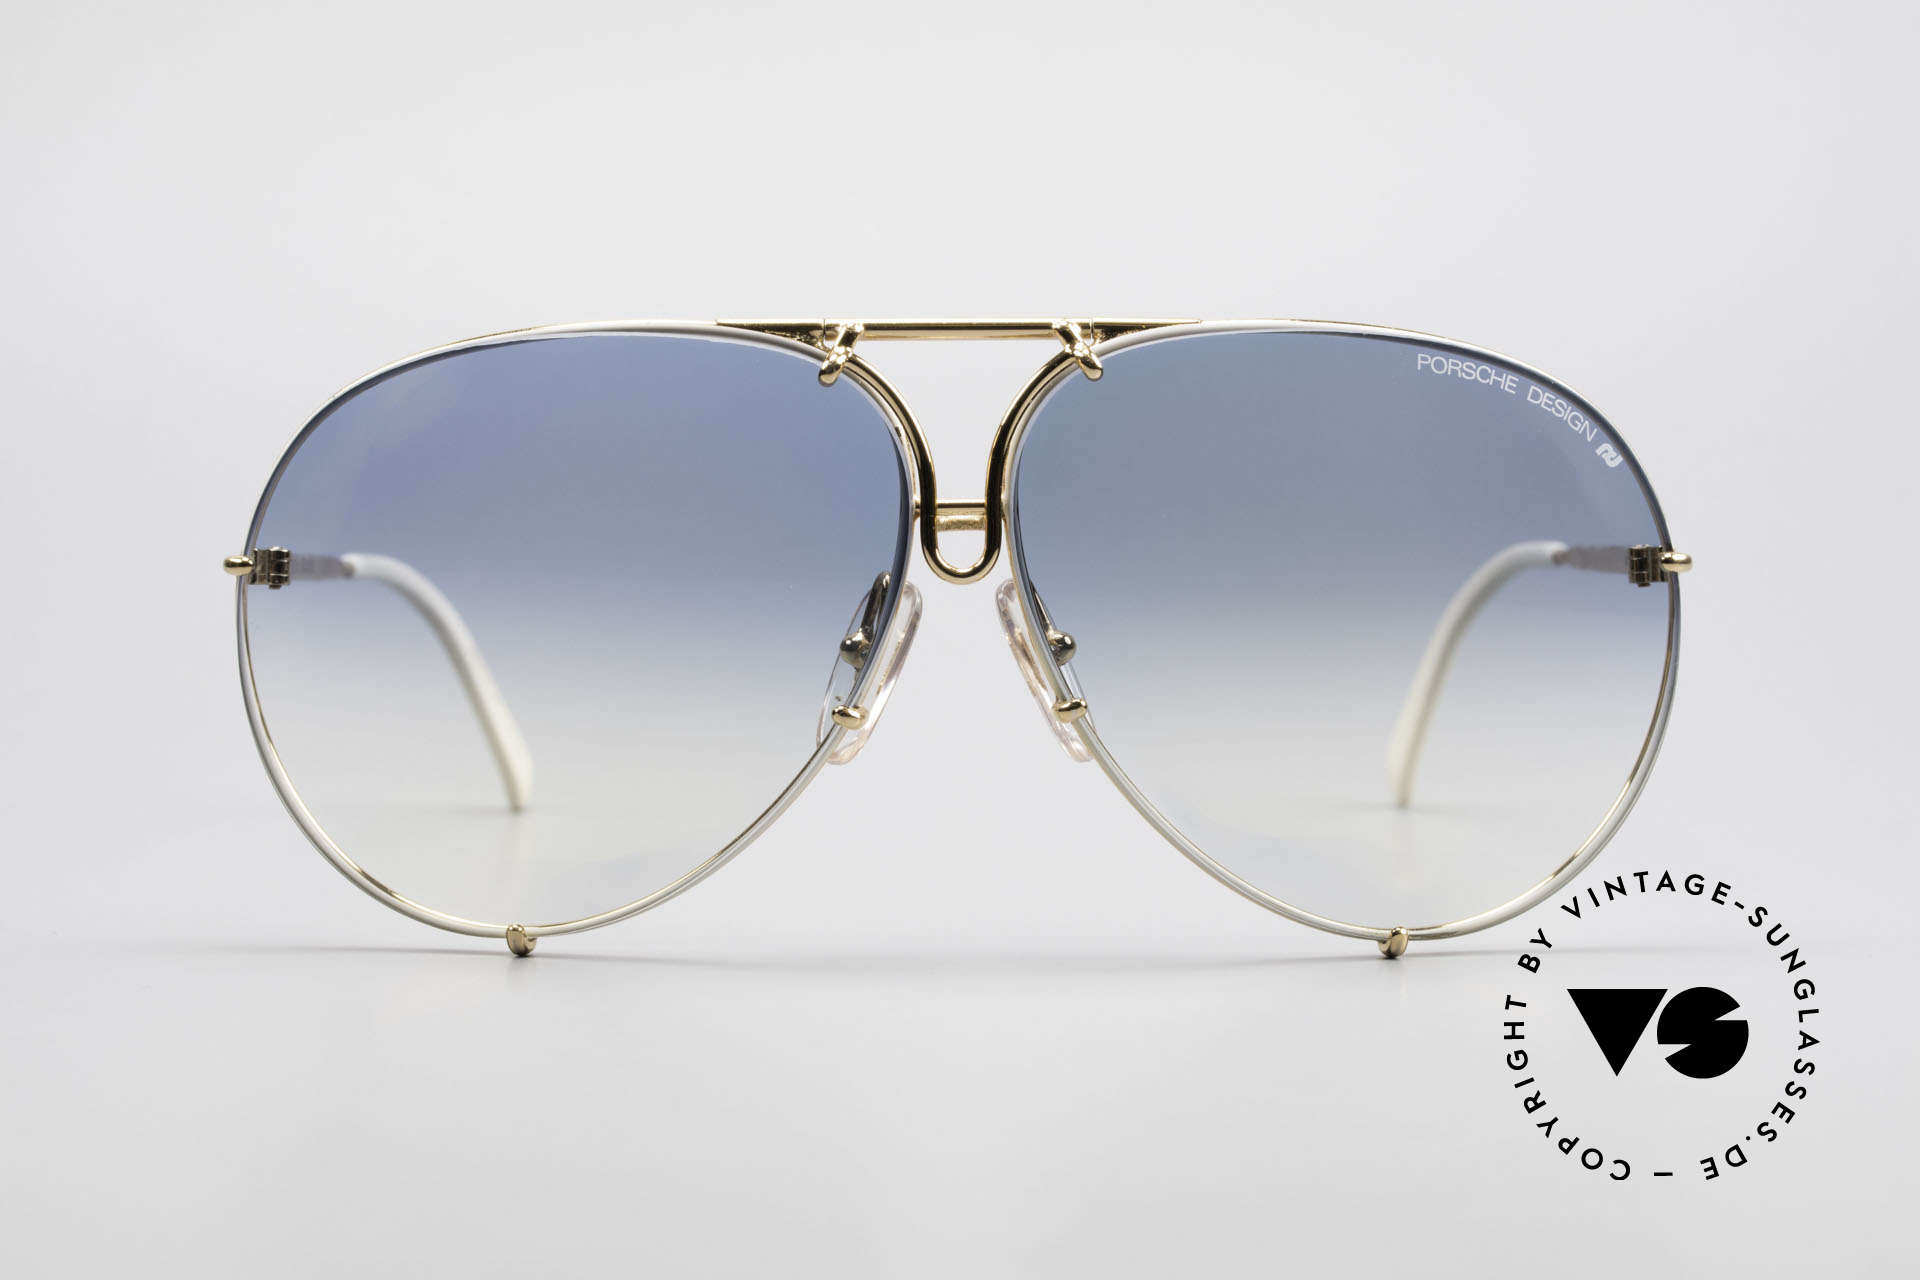 Porsche 5623 One Of A Kind Collector's Item, comes with extra blue-gradient lenses & Porsche case, Made for Men and Women